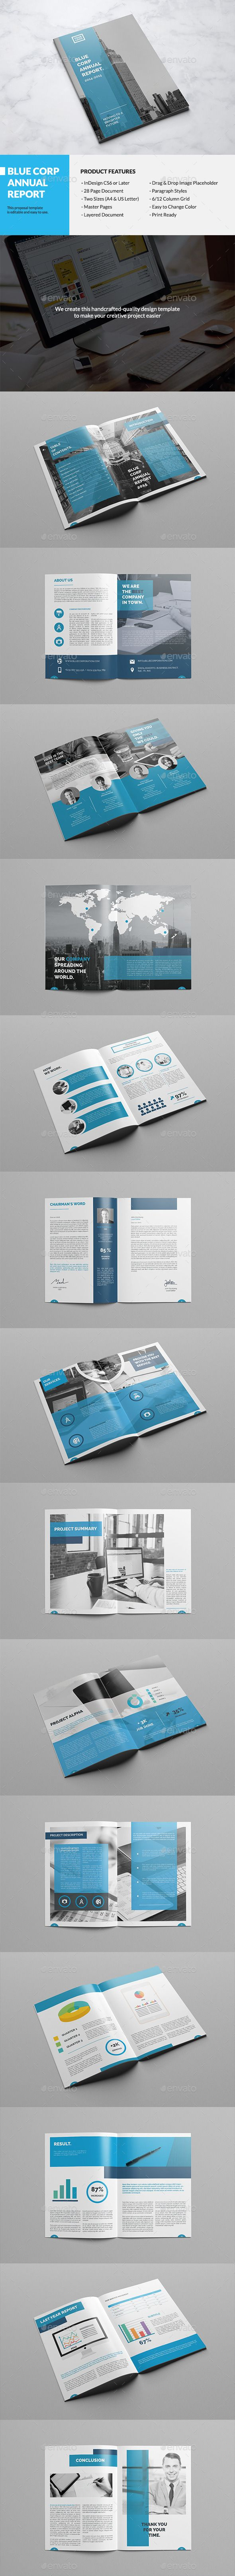 433 best Annual Report Templates images on Pinterest | Brochure ...